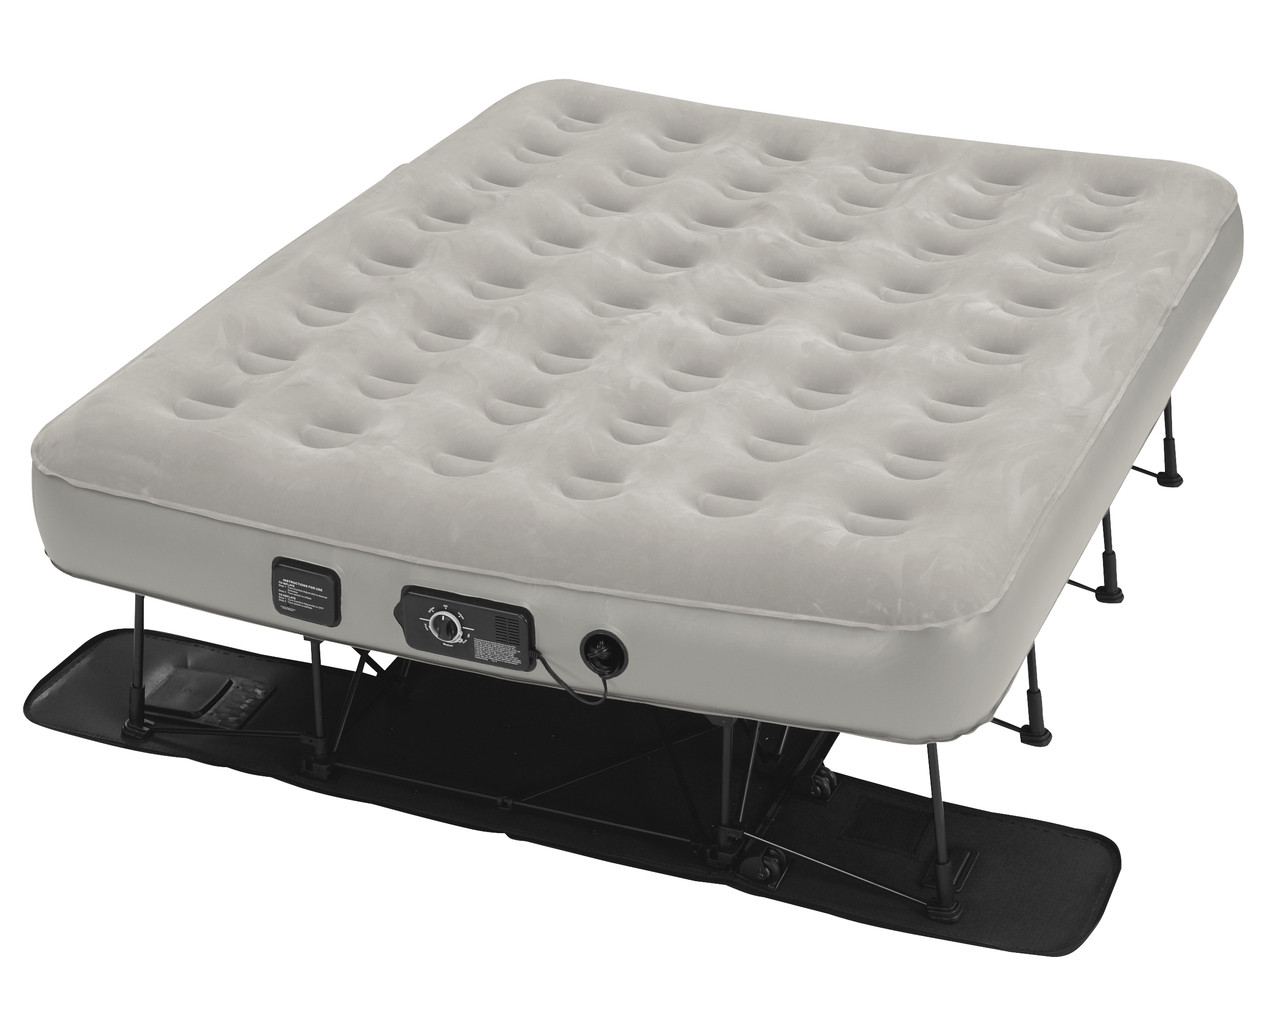 ez bed queen Insta Bed EZ Bed Queen w/neverFLAT Pump | Air Mattress With Frame ez bed queen